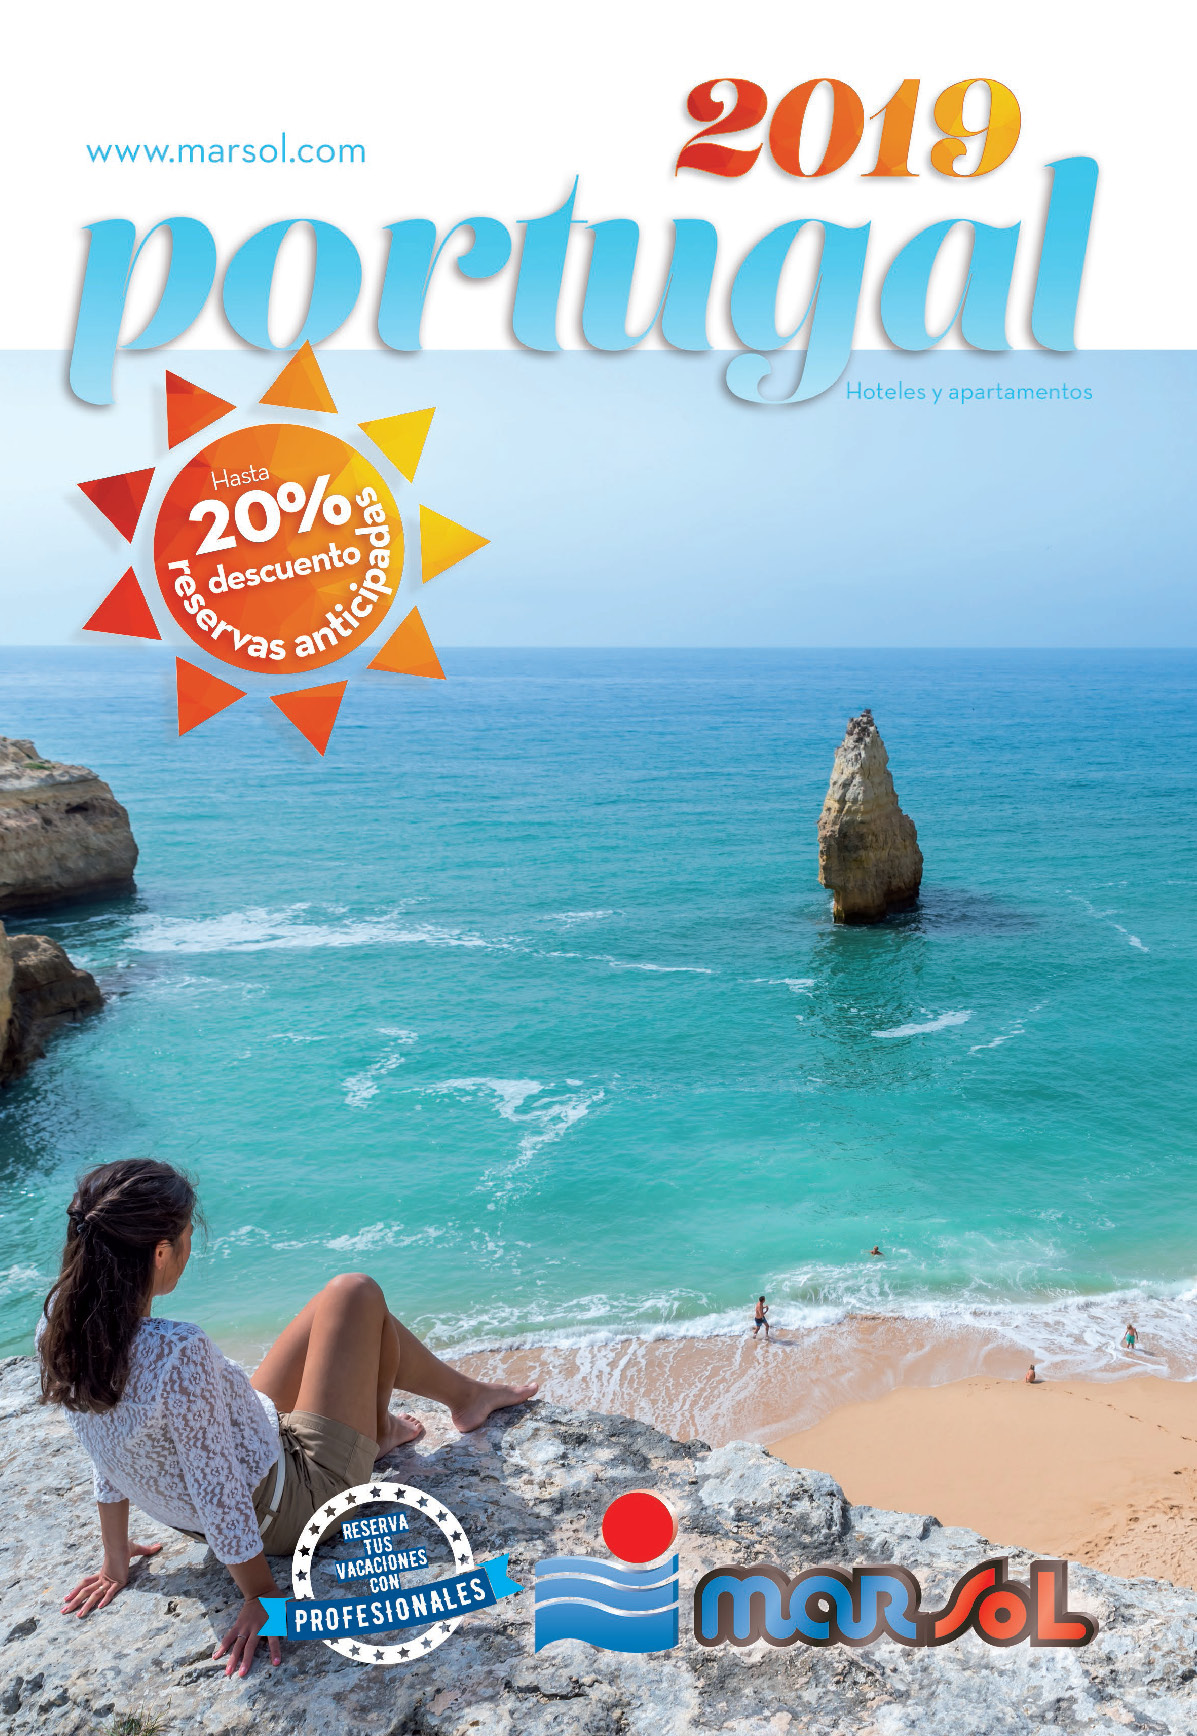 Catalogo Marsol Portugal 2019